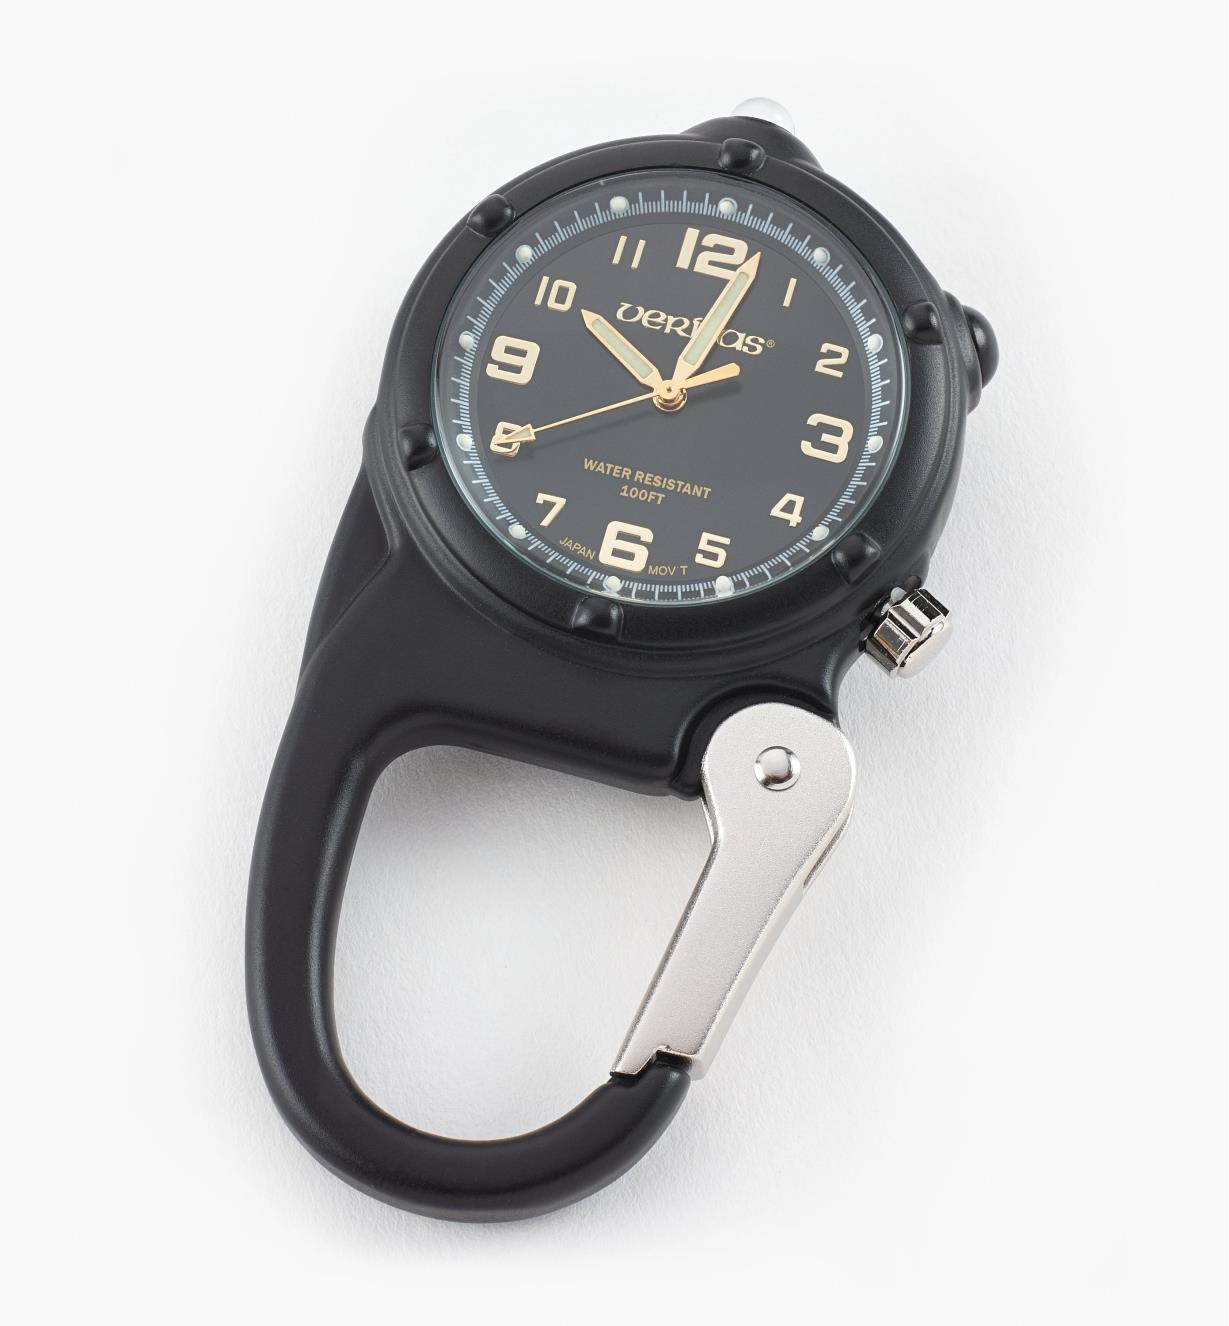 45K1890 - Veritas Carabiner Watch